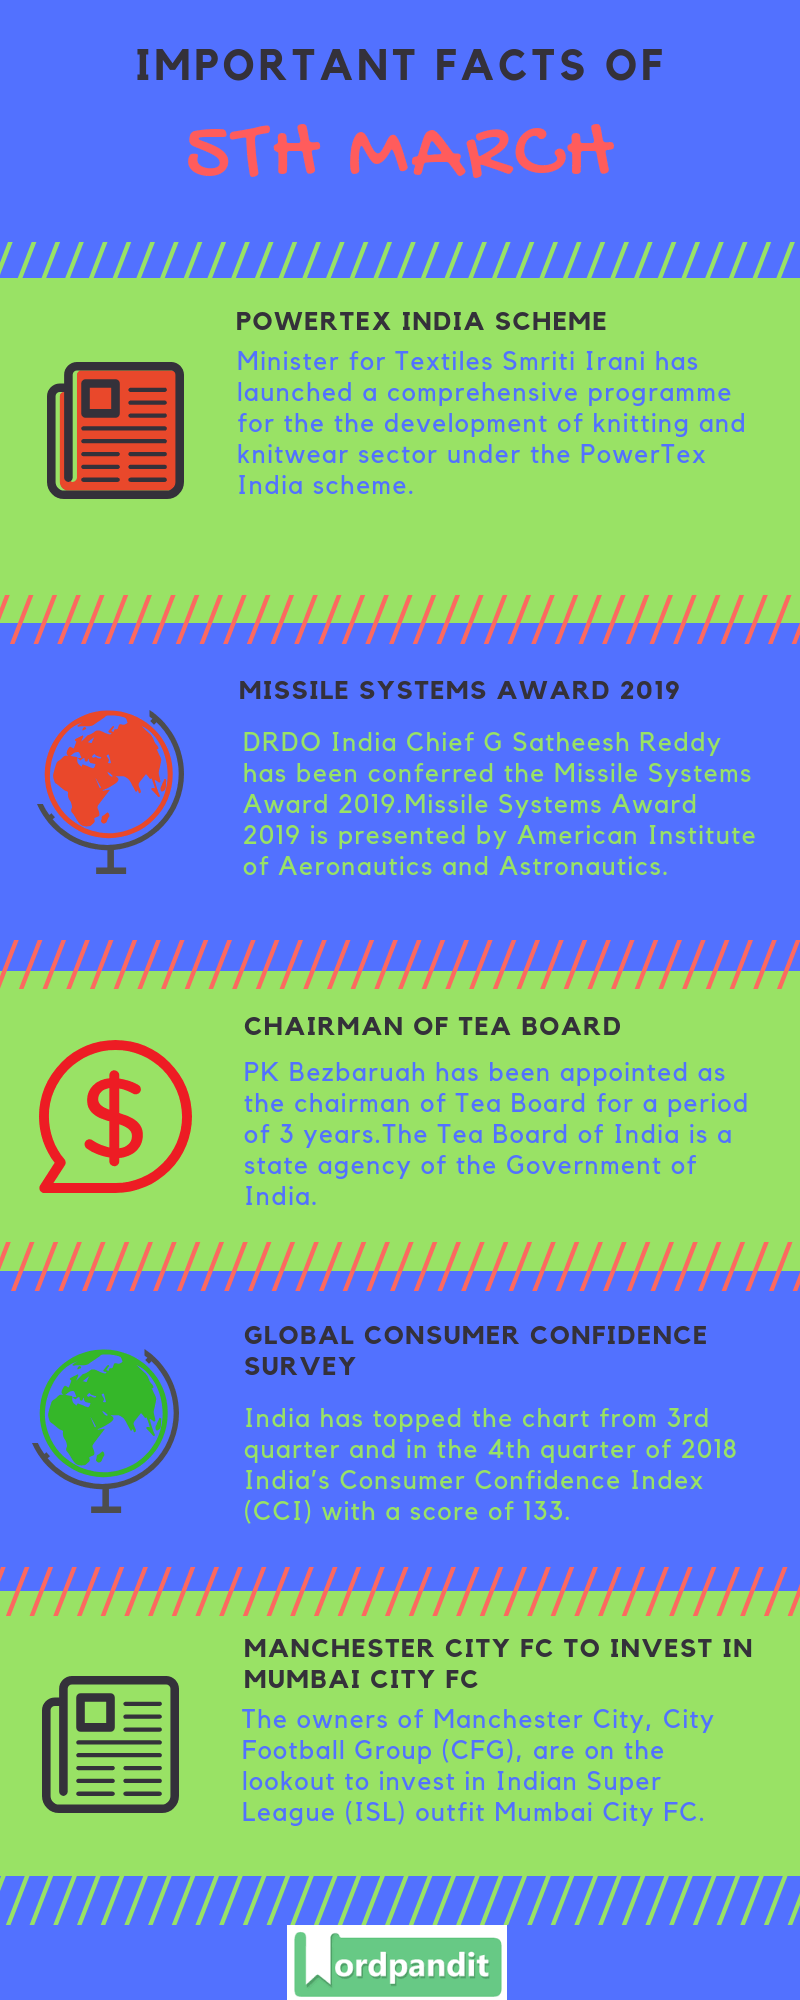 Daily Current Affairs 5 March 2019 Current Affairs Quiz 5 March 2019 Current Affairs Infographic